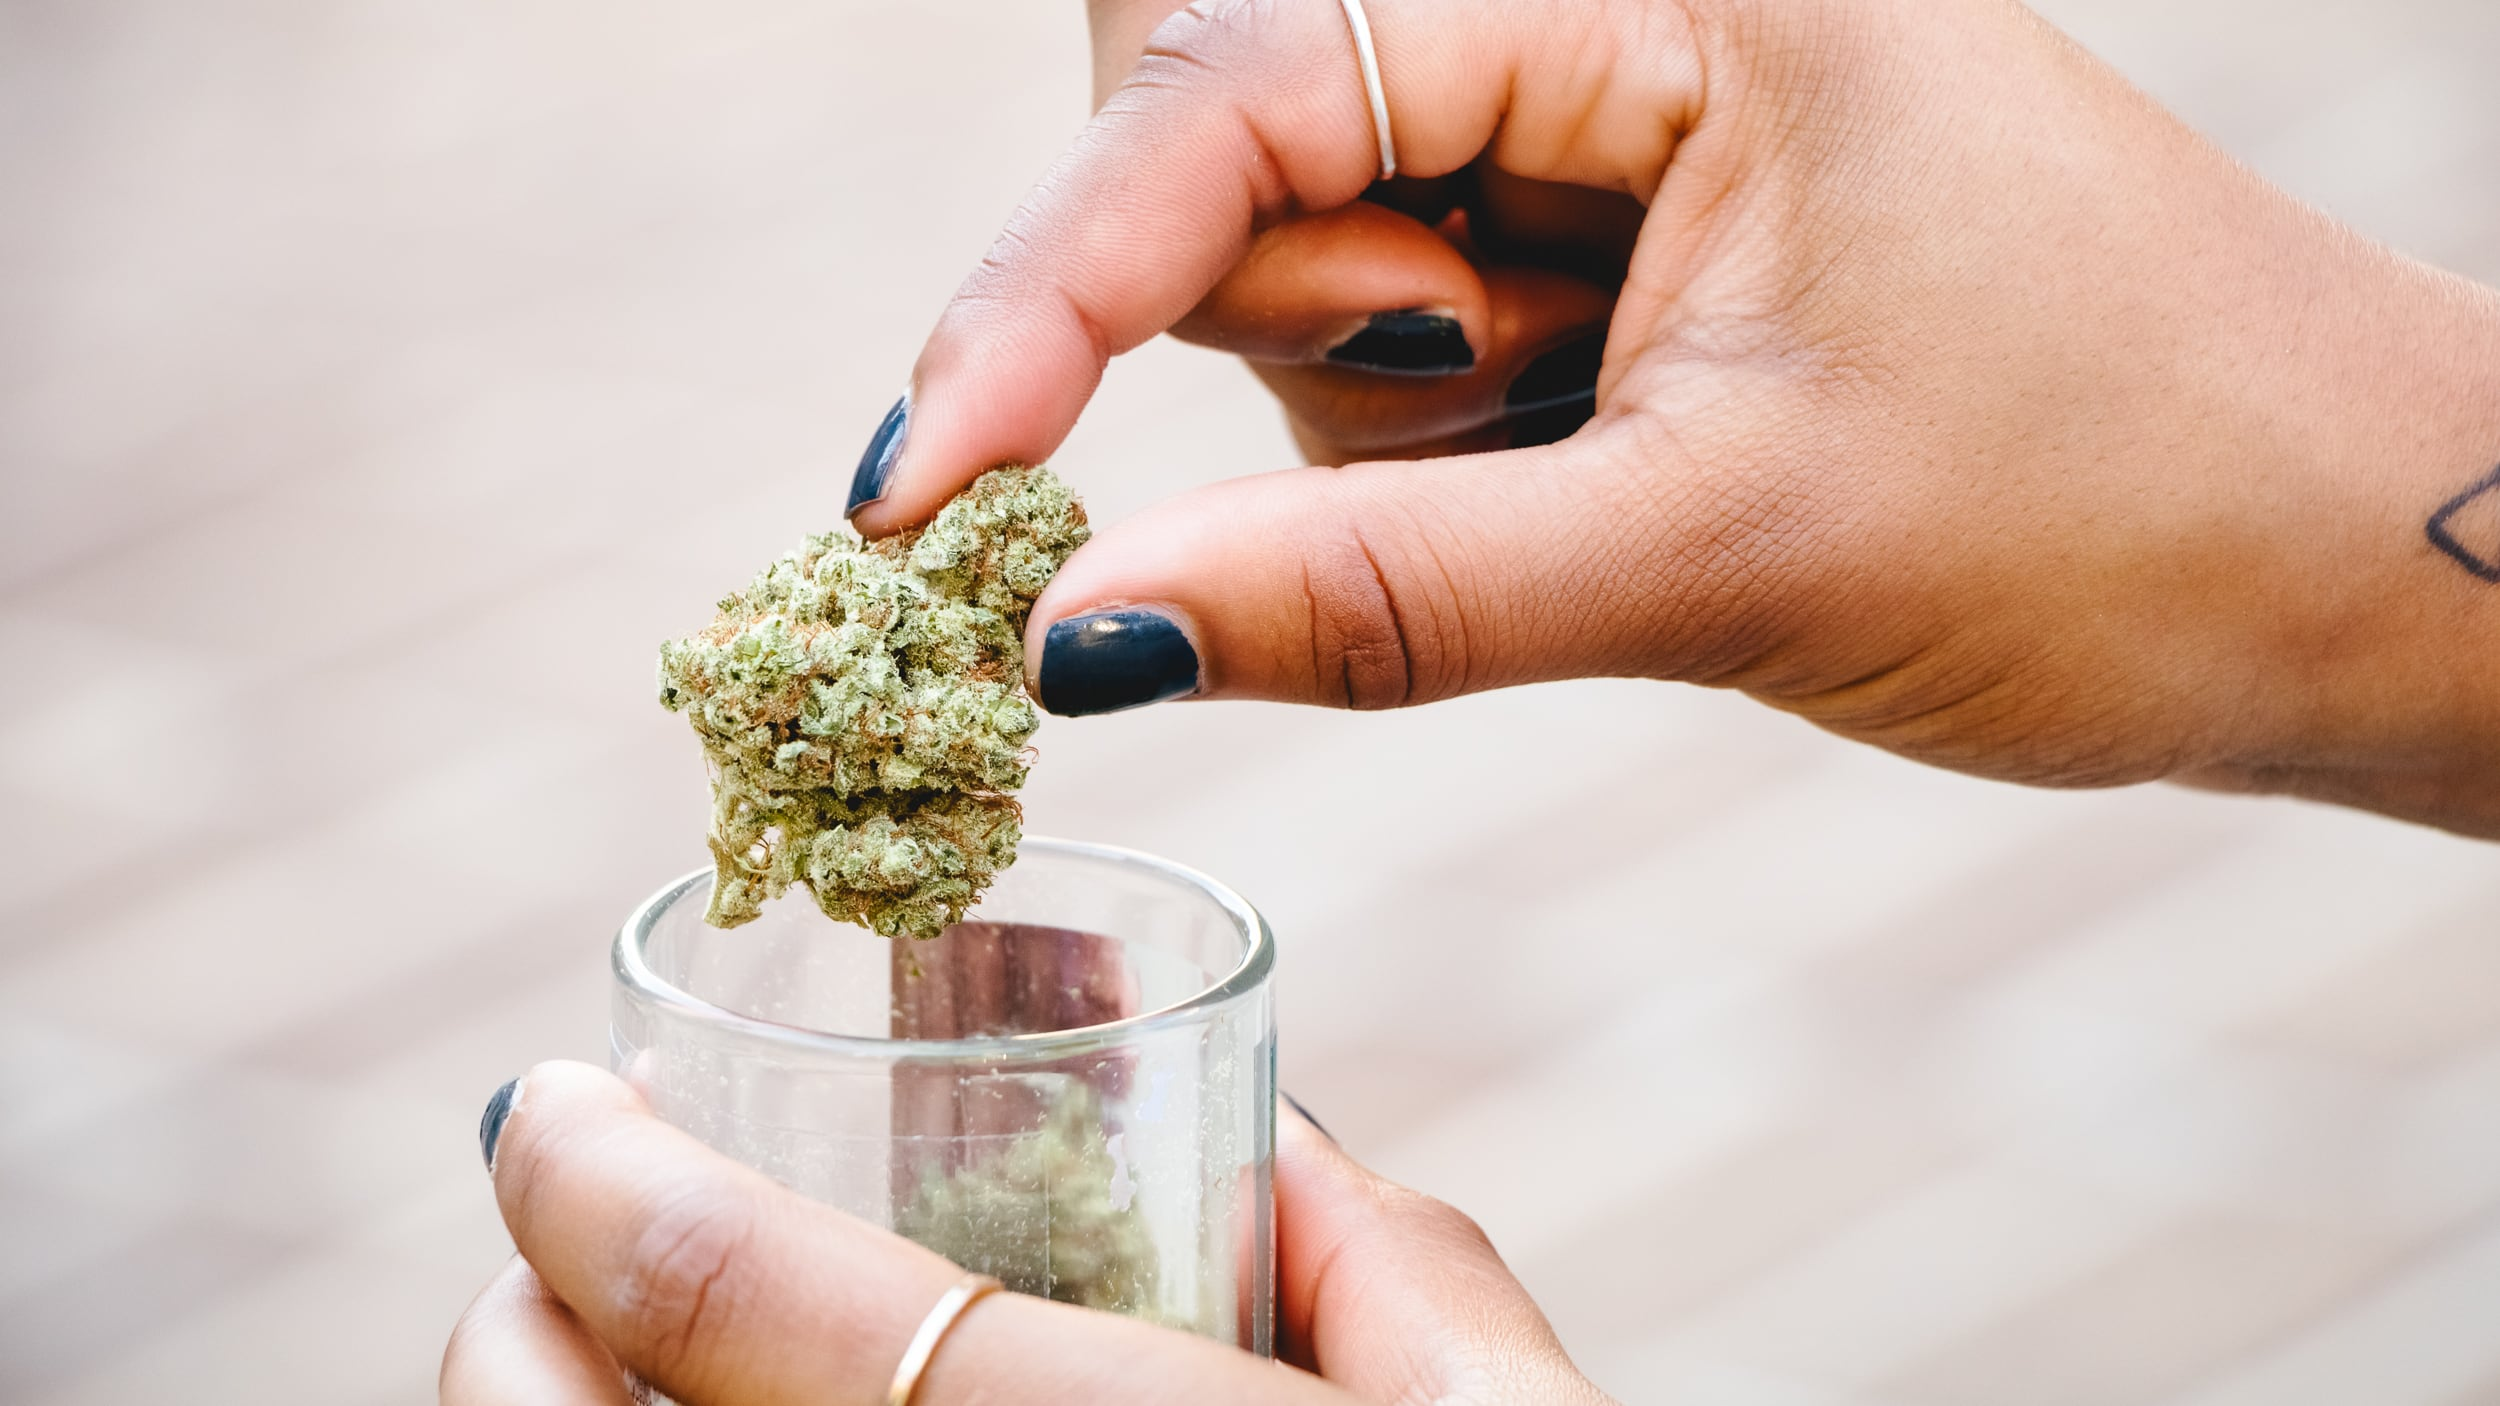 marijuana nugget being lifted from its container